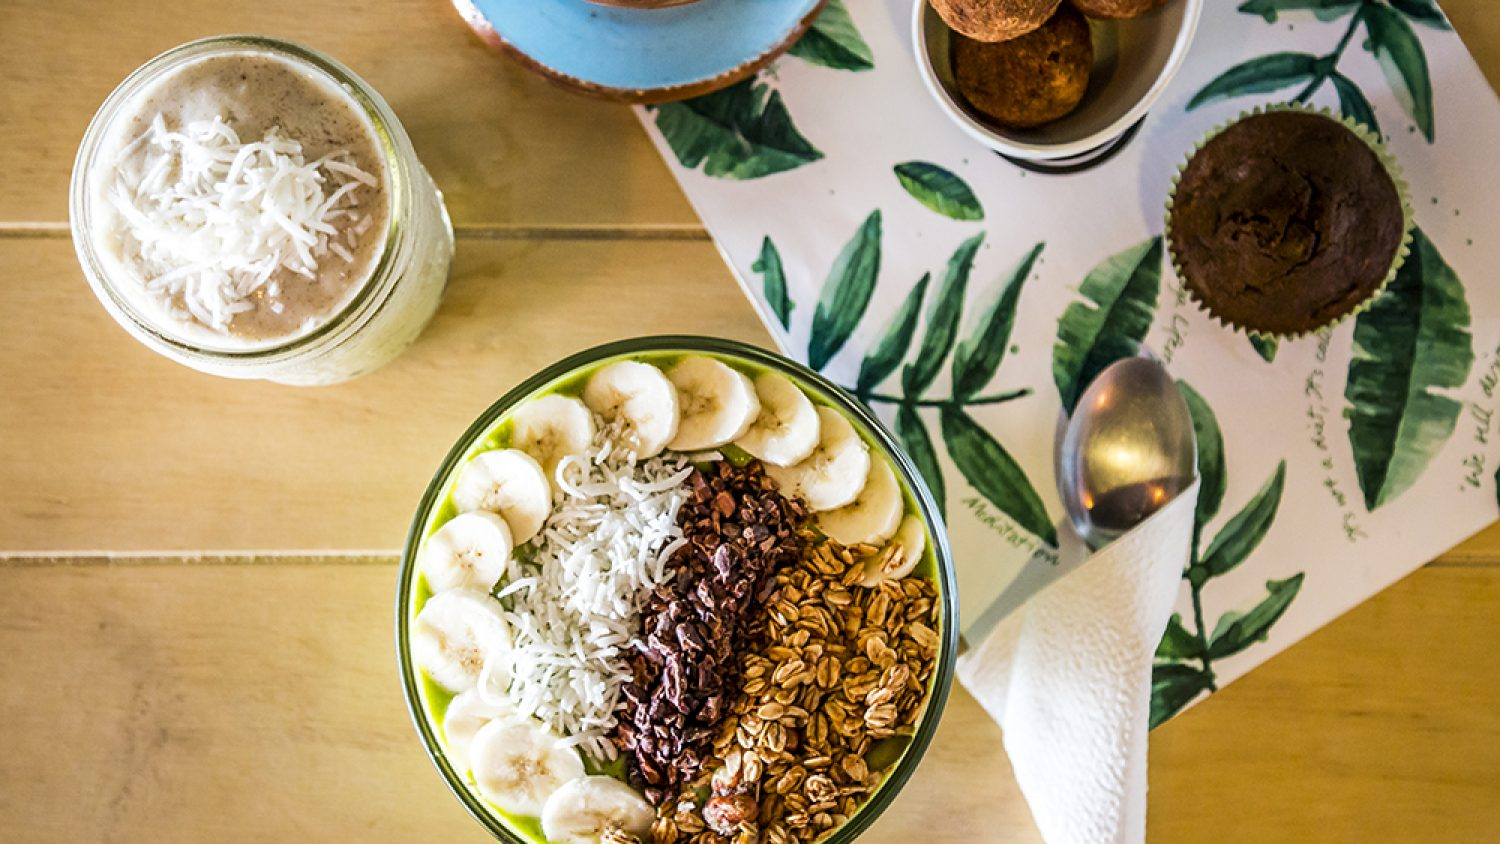 5 Fast-Food Lunches Served at The Yogi Bar That Are Actually Healthy